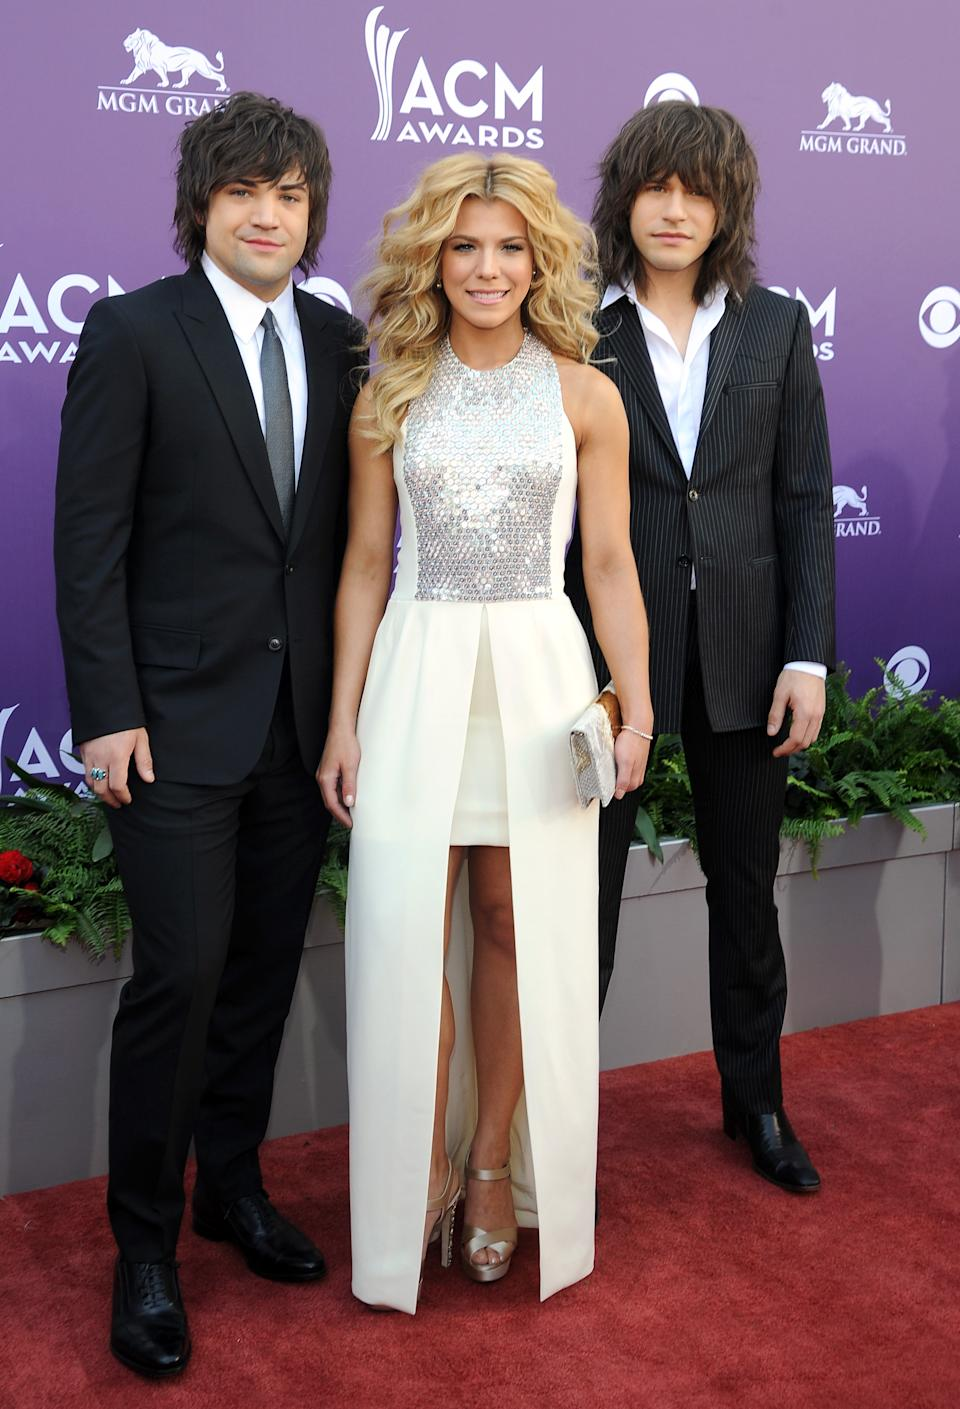 From left, Neil Perry, Kimberly Perry and Reid Perry, of musical group The Band Perry, arrive at the 48th Annual Academy of Country Music Awards at the MGM Grand Garden Arena in Las Vegas on Sunday, April 7, 2013. (Photo by Al Powers/Invision/AP)